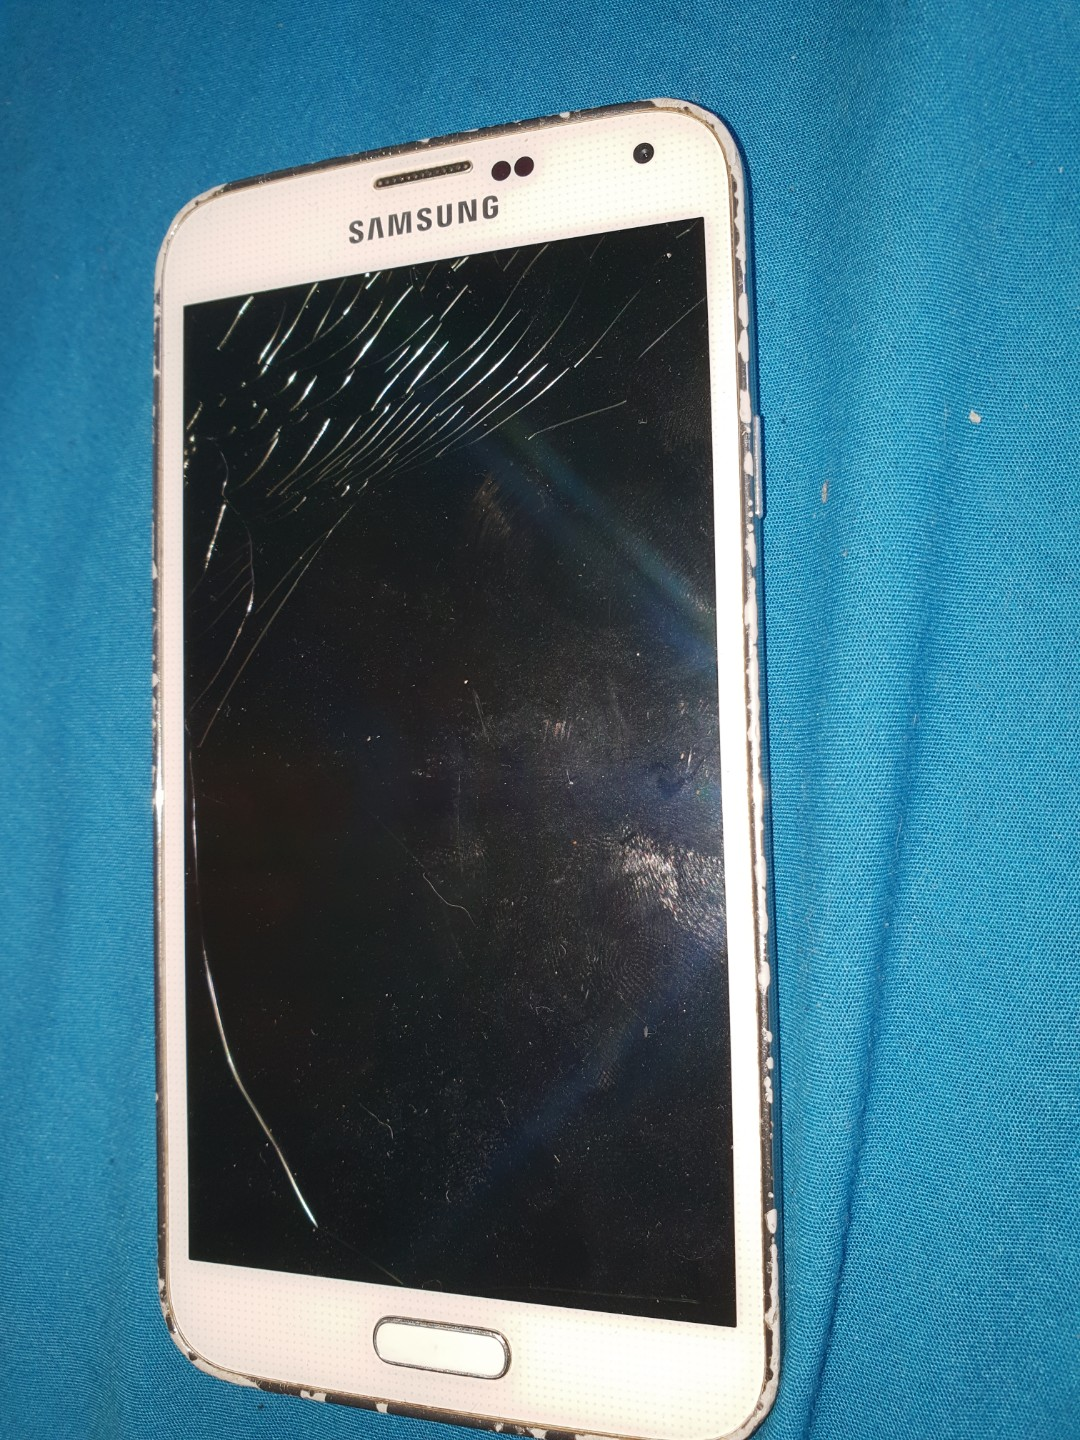 Samsung s5 faulty